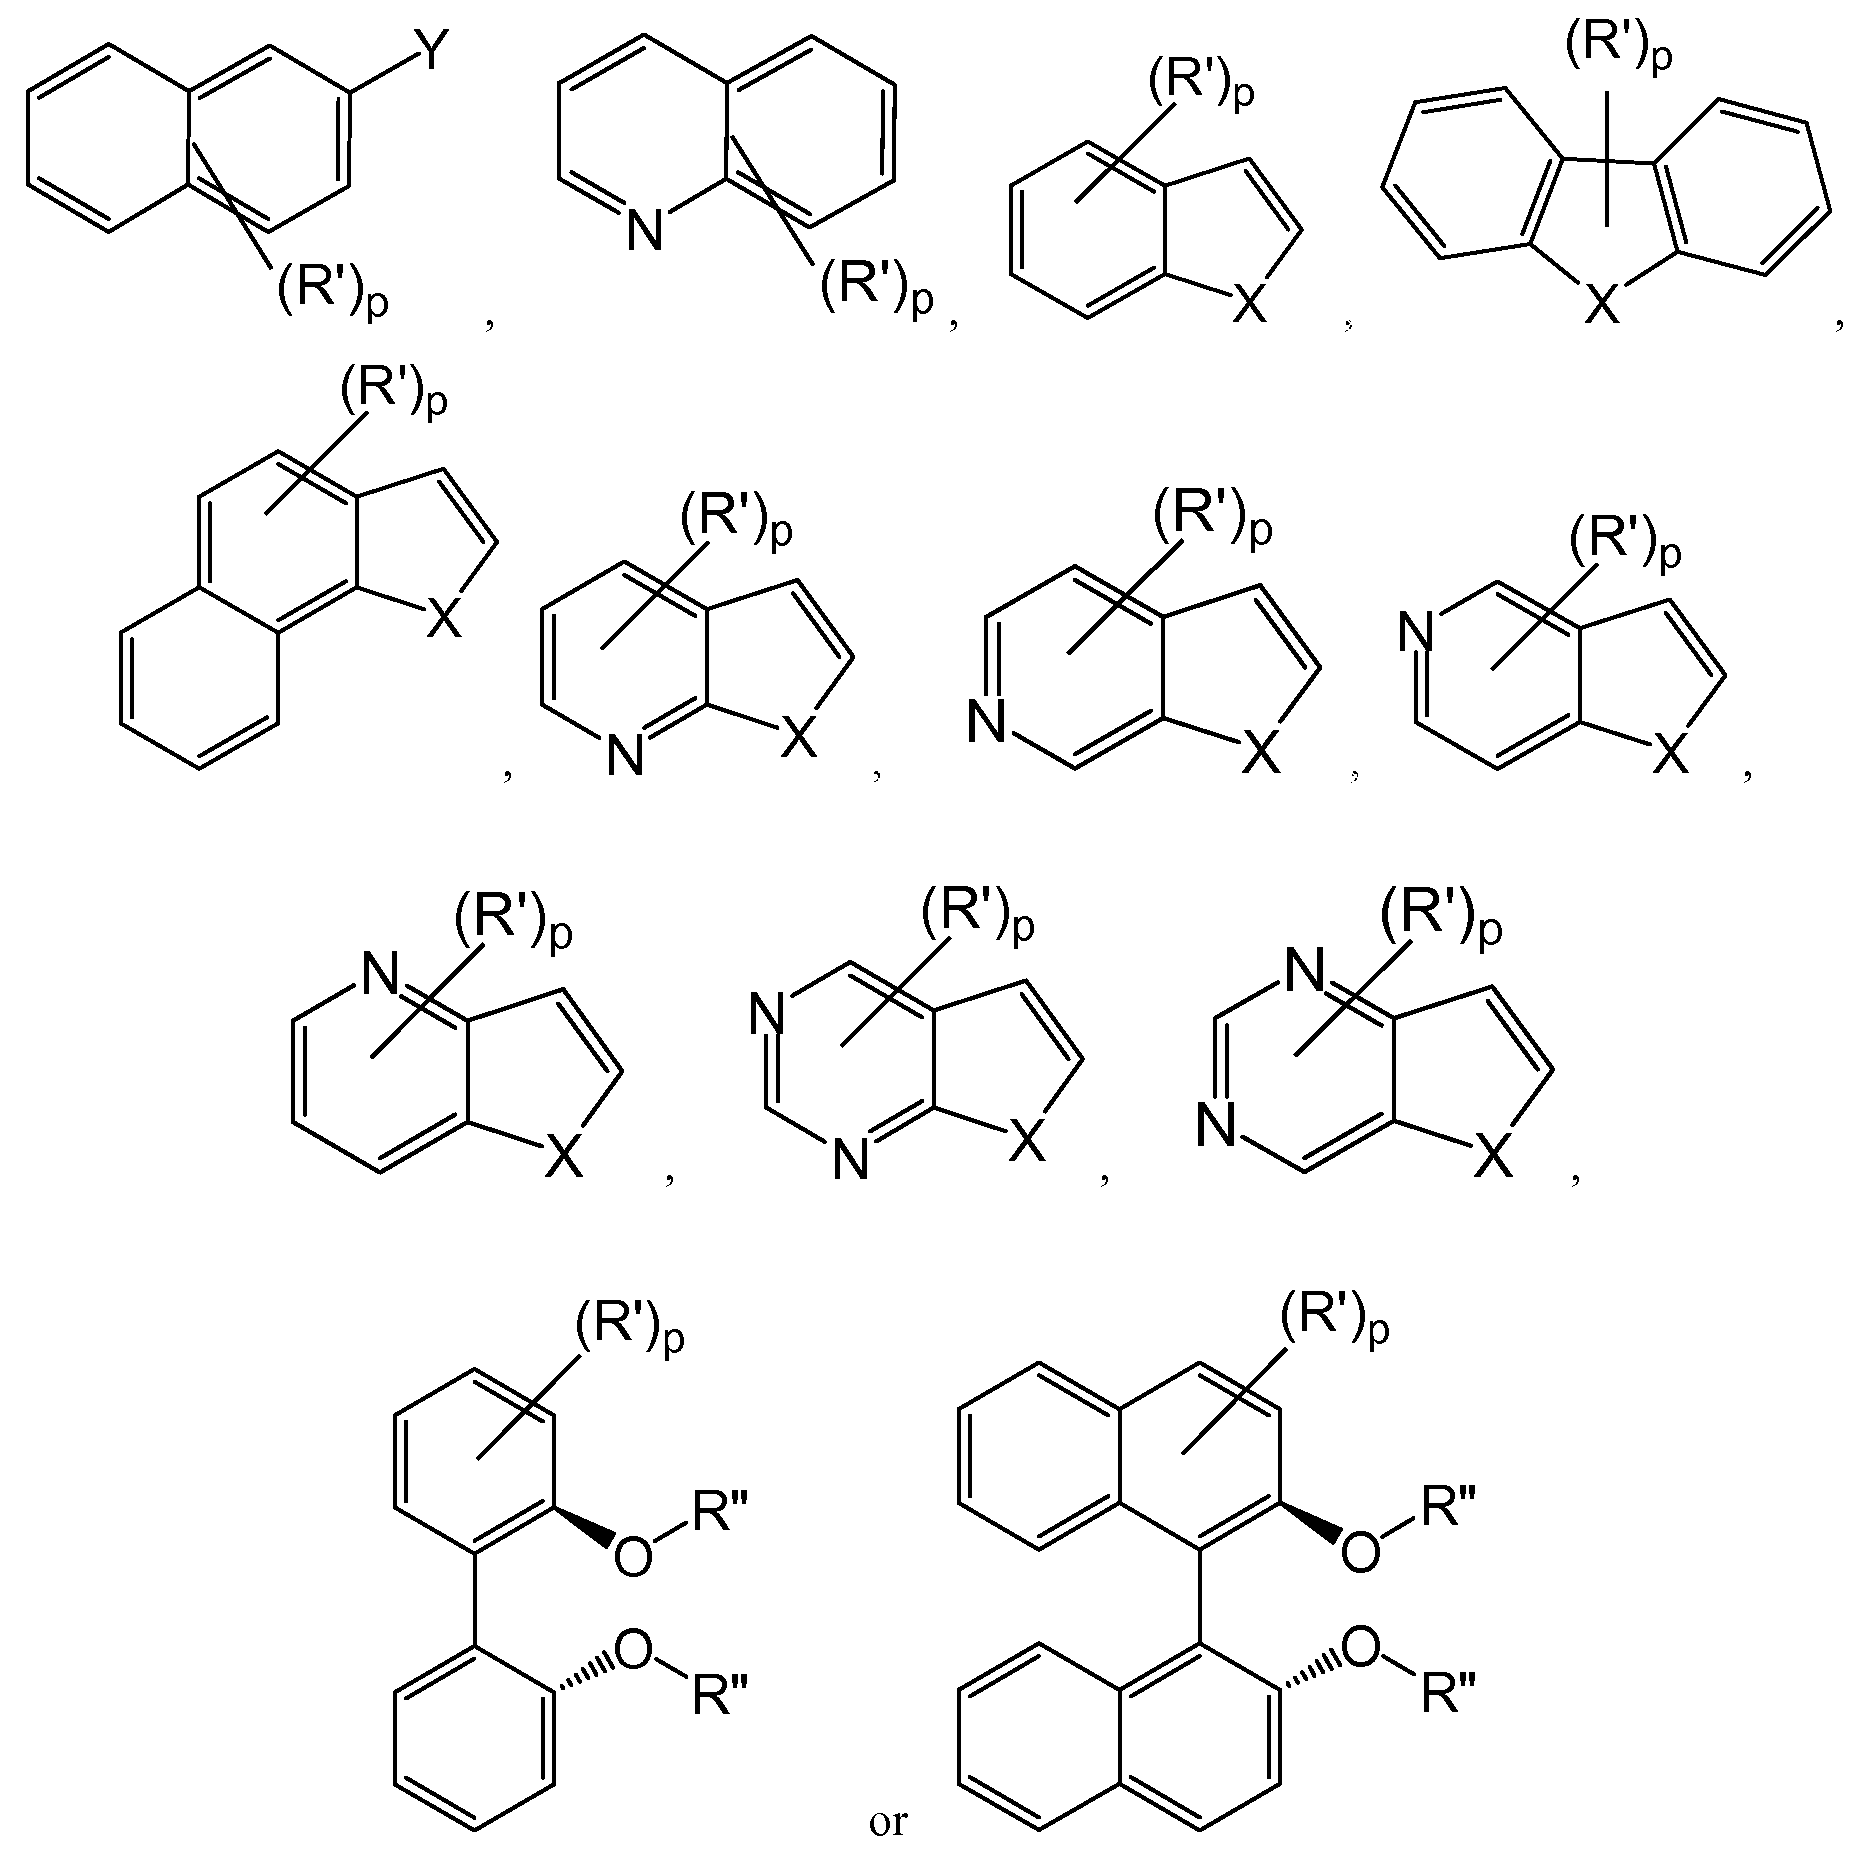 wo2016022624a1 silylation of aromatic heterocycles by earth DoD Model vs OSI Model figure imgf000025 0001